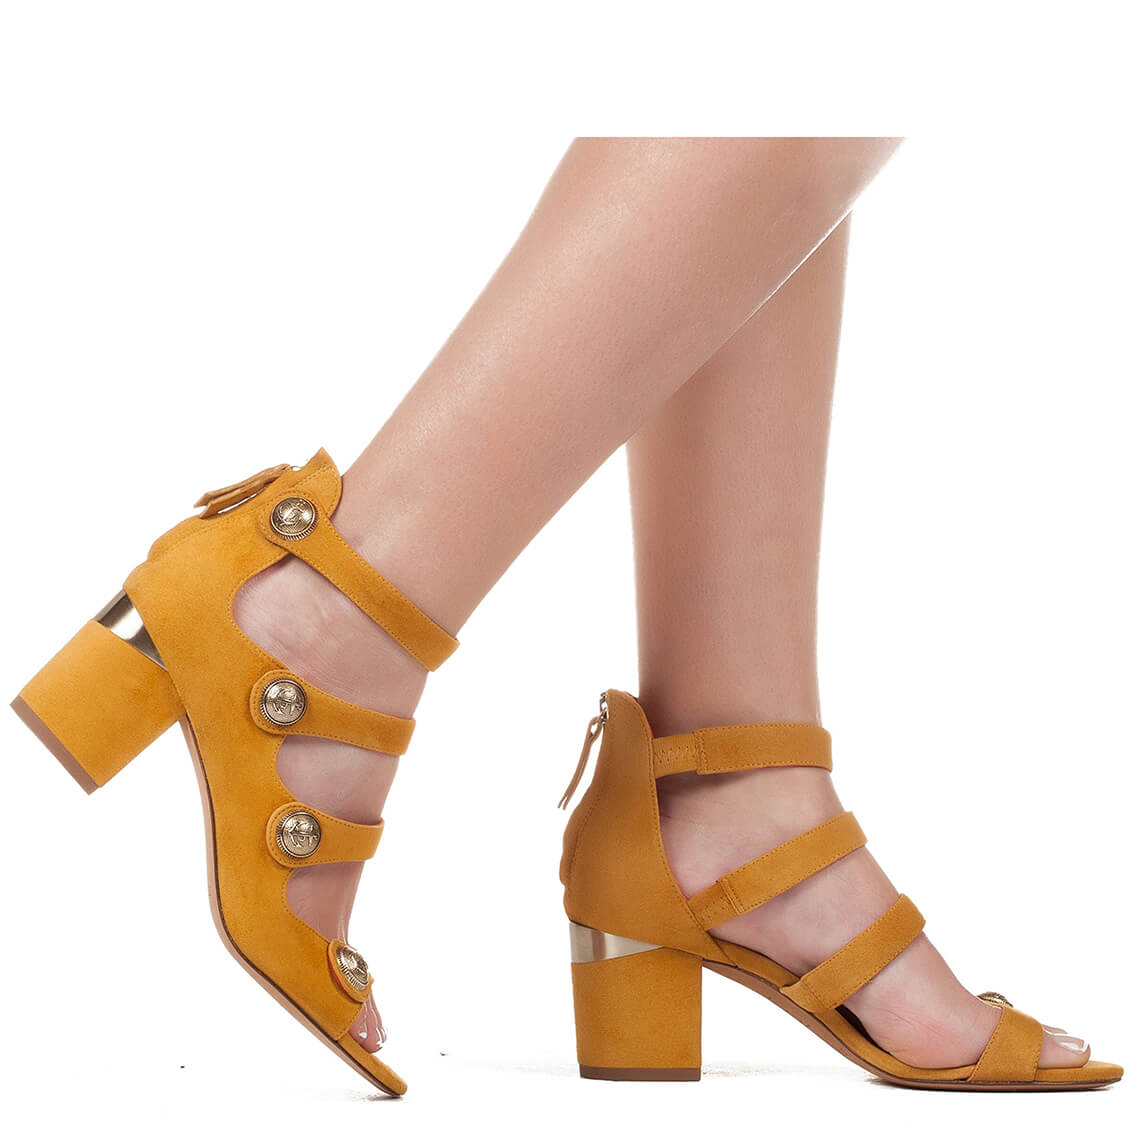 fa2ea4048db2 Mid block heel sandals in tobacco suede with metallic buttons Mid heel  sandals with metal buttons - online shoe store Pura Lopez ...